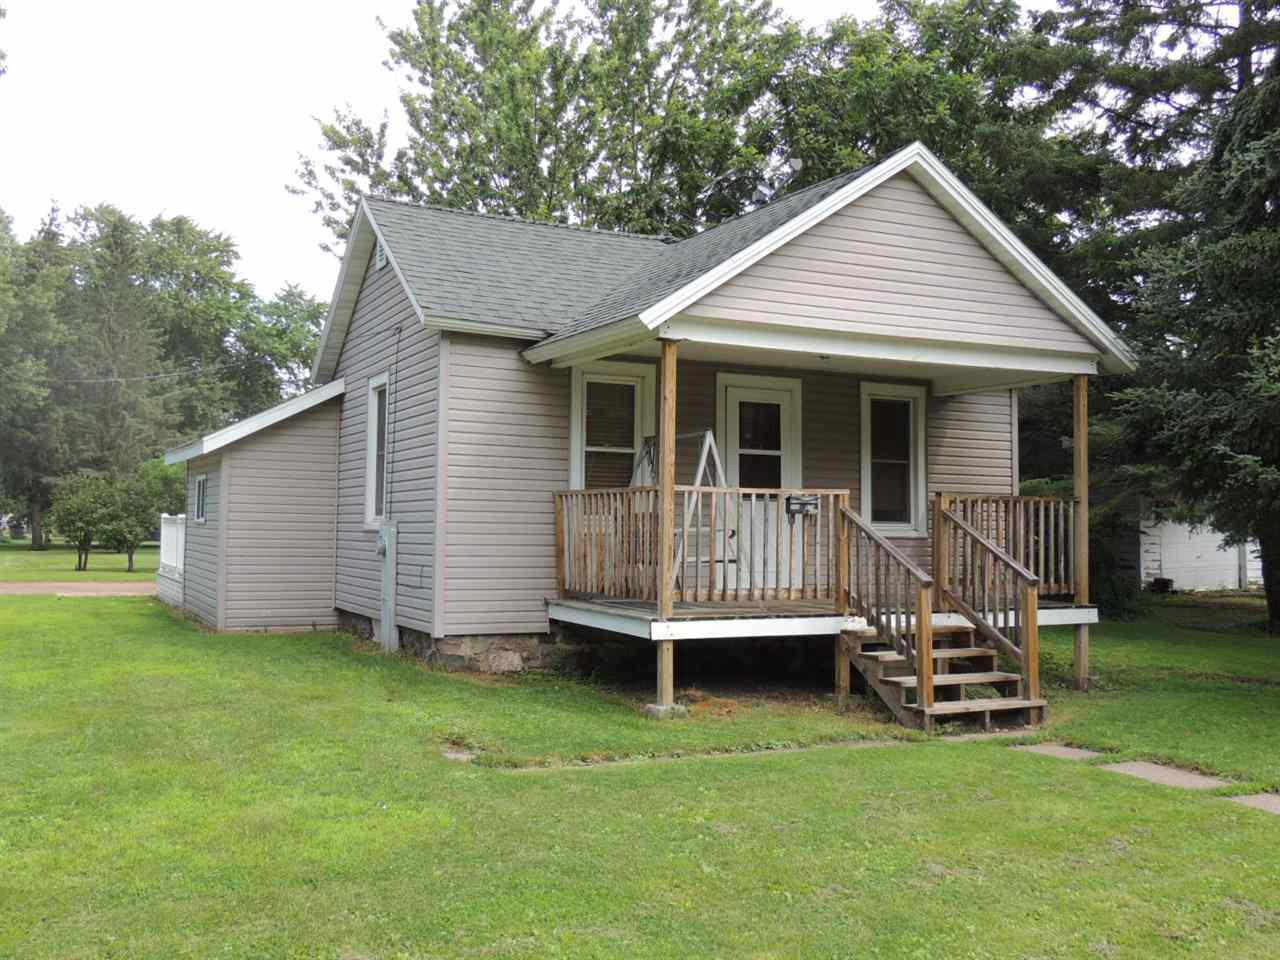 Smaller 2 bed 1 bath home which has been extensively remodeled. Updated vinyl windows, roof, siding, and recently remodeled kitchen as well. Located less than a block from popular city park. Motivated seller. COME SEE!!!